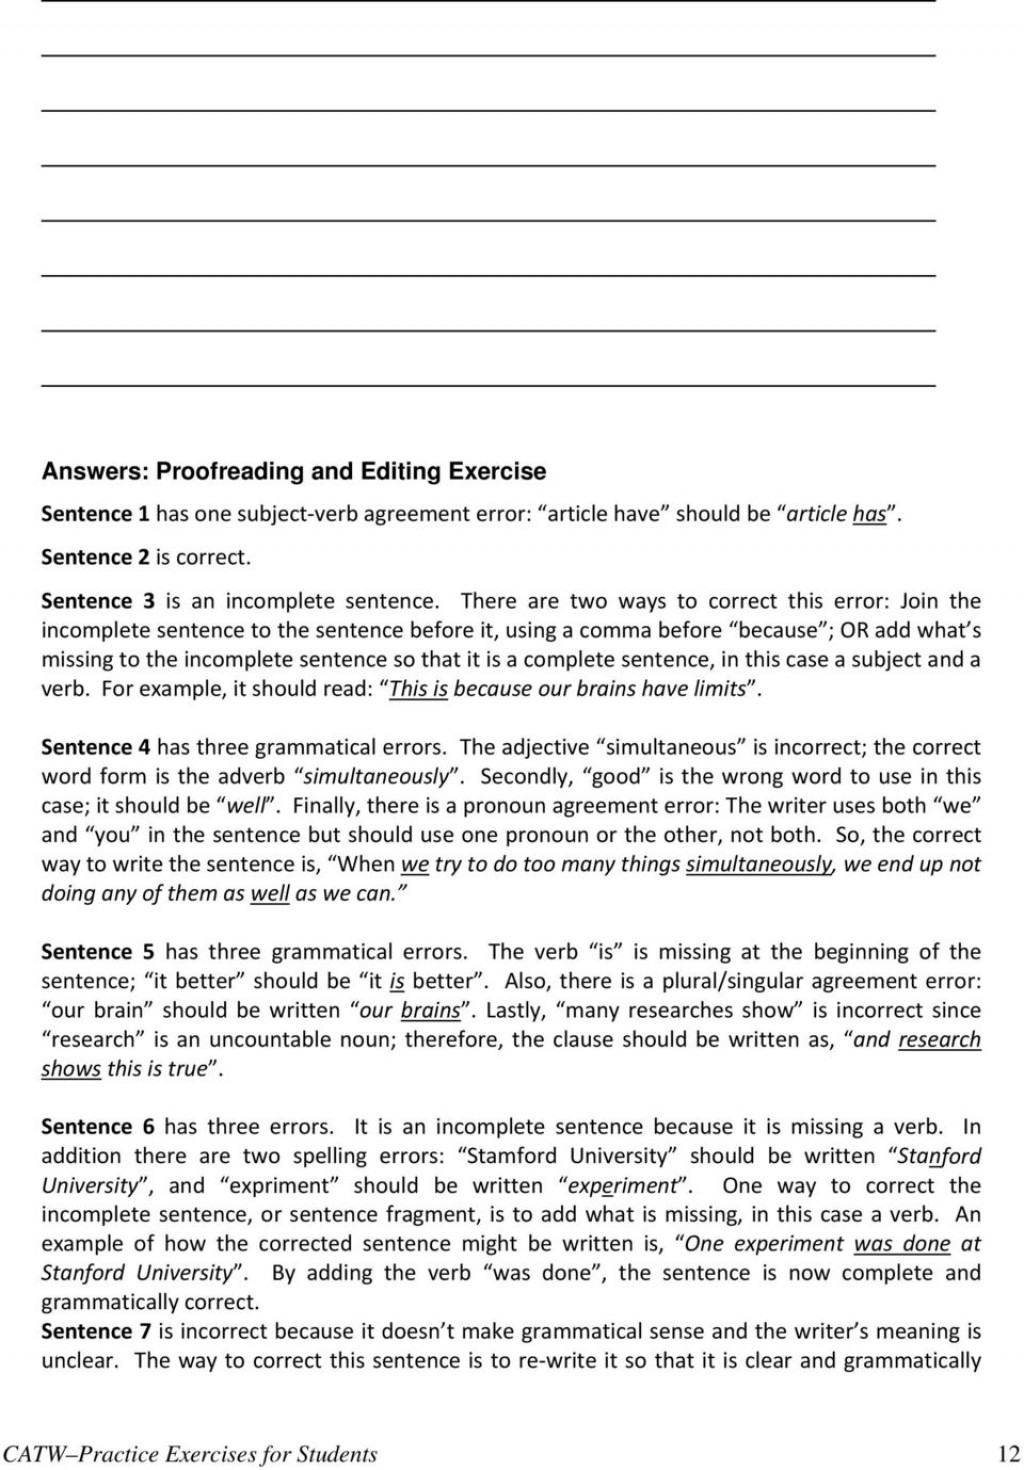 006 Catw Essay Samples What Is Critical Analysis Pas Stunning Example Examples Large